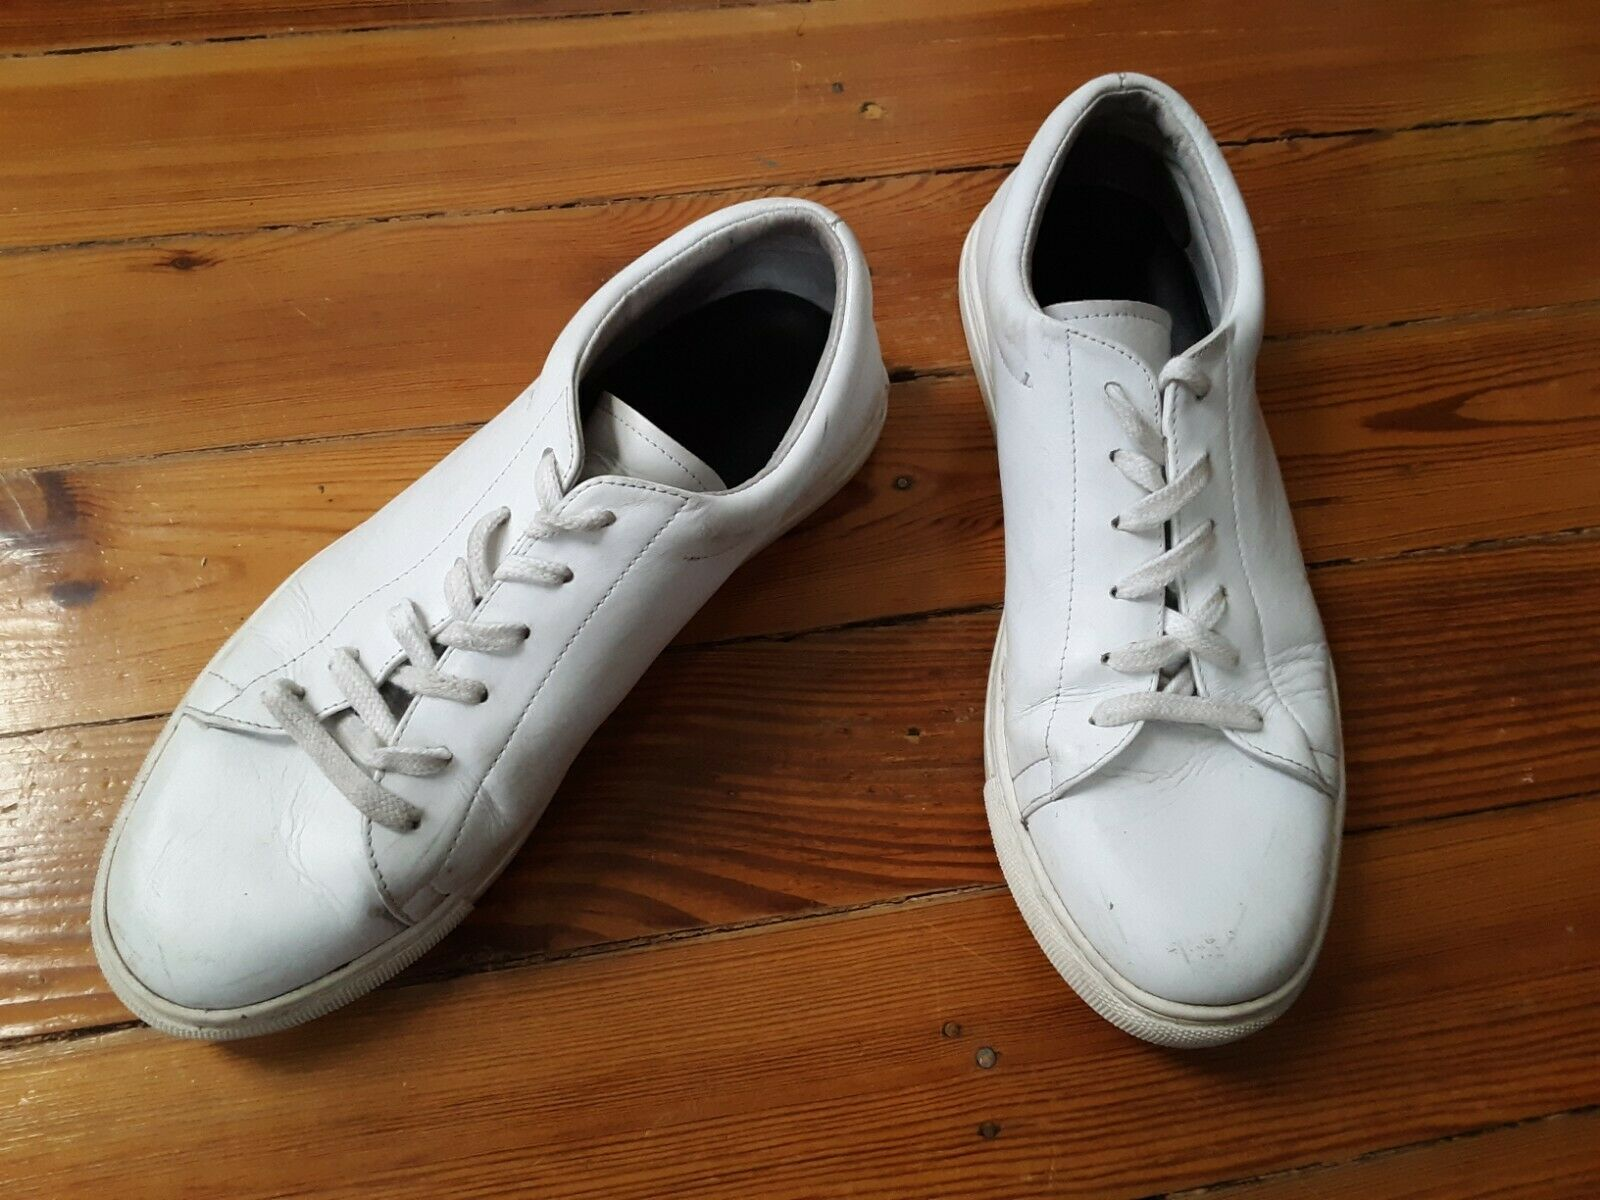 Sandro Paris flat smooth white leather sneakers  Sz 43 10. Must Have Rare